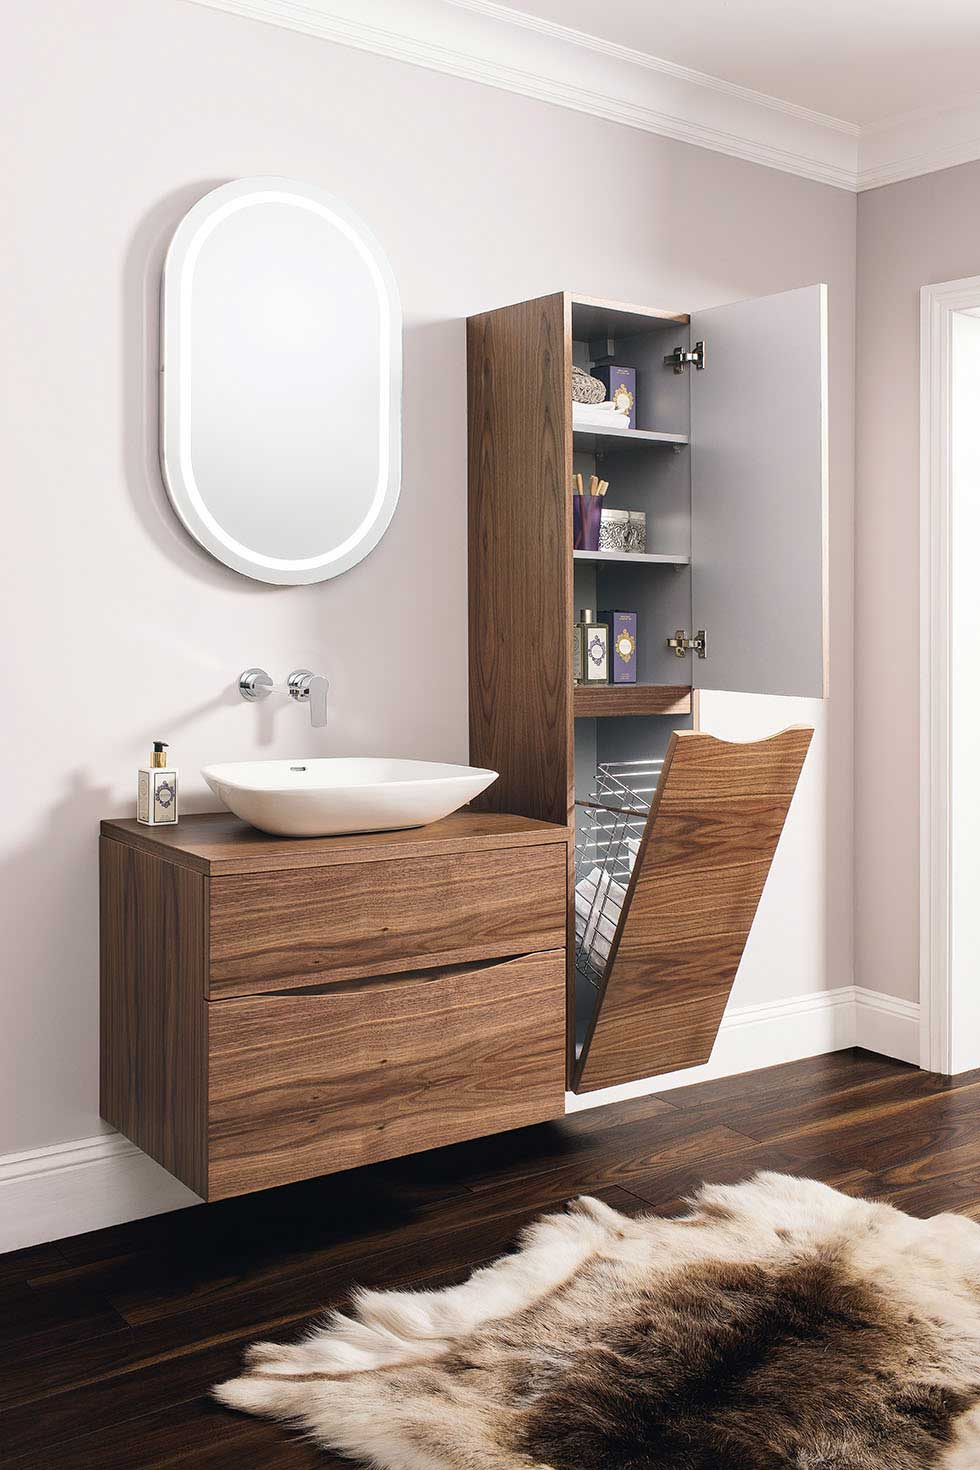 Bathroom Cabinets 30cm Wide great bathroom storage ideas - real homes